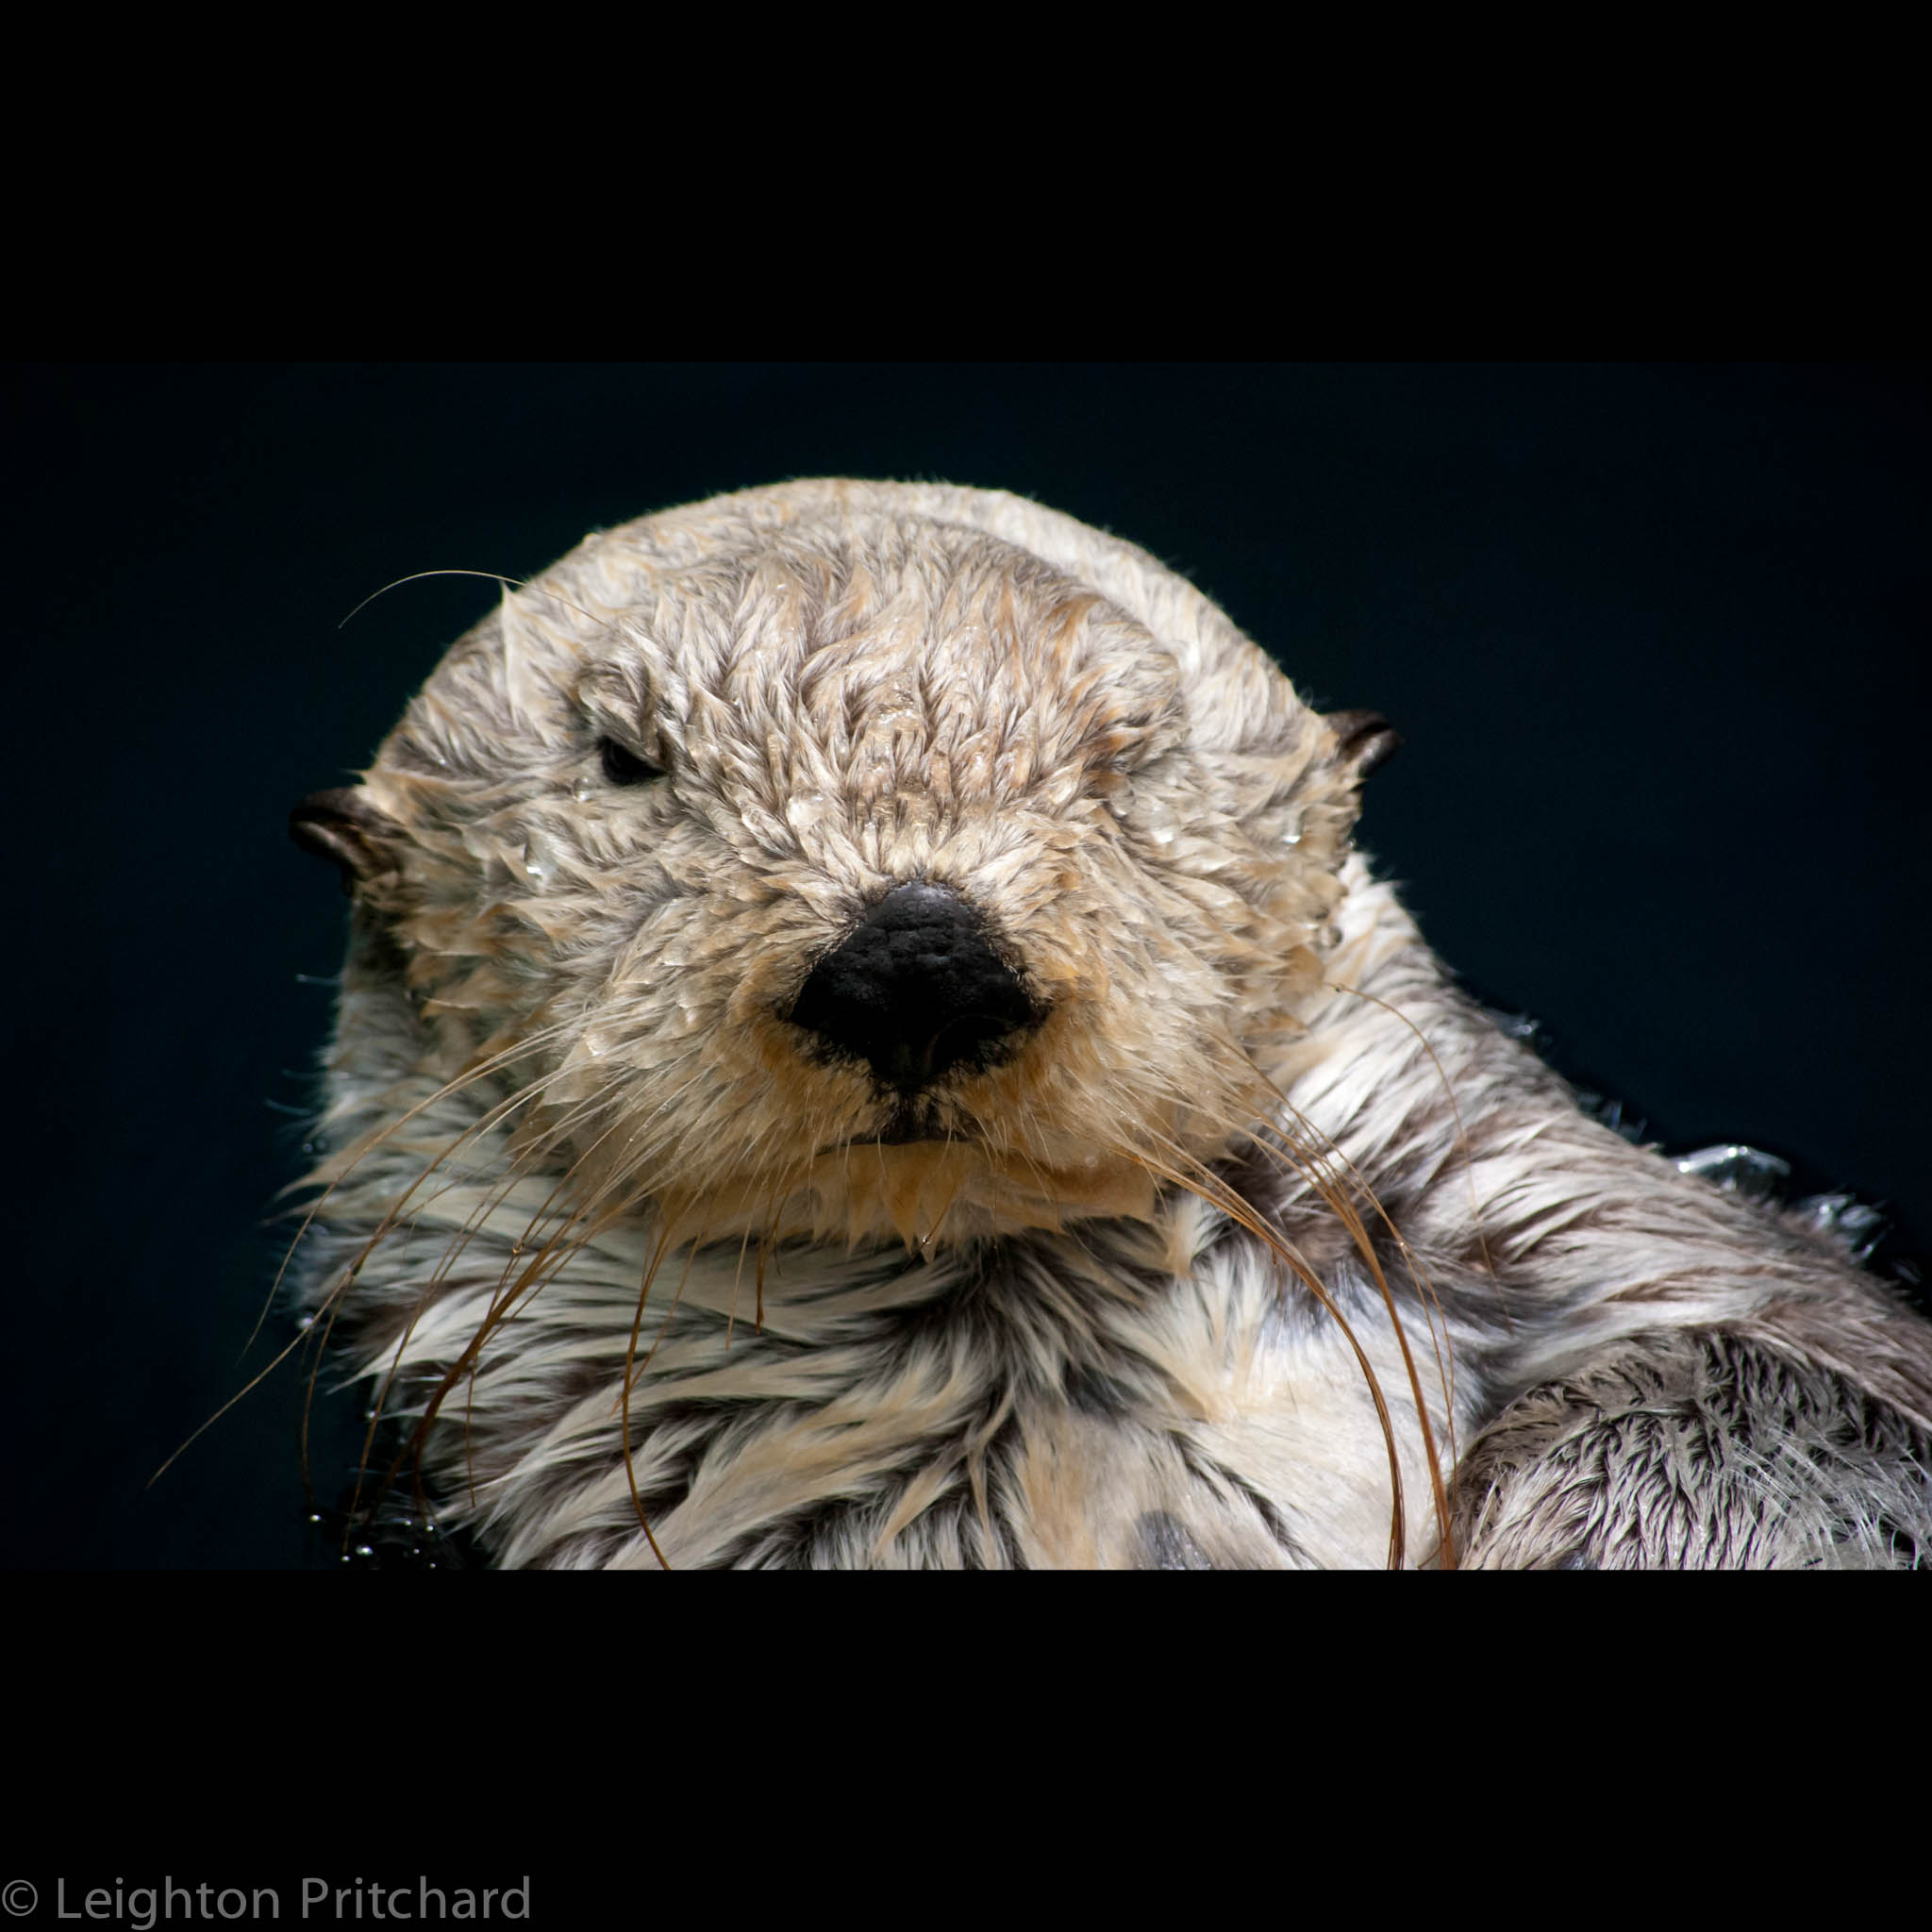 Grumpy Sea Otter Grudgingly Gives a Wink